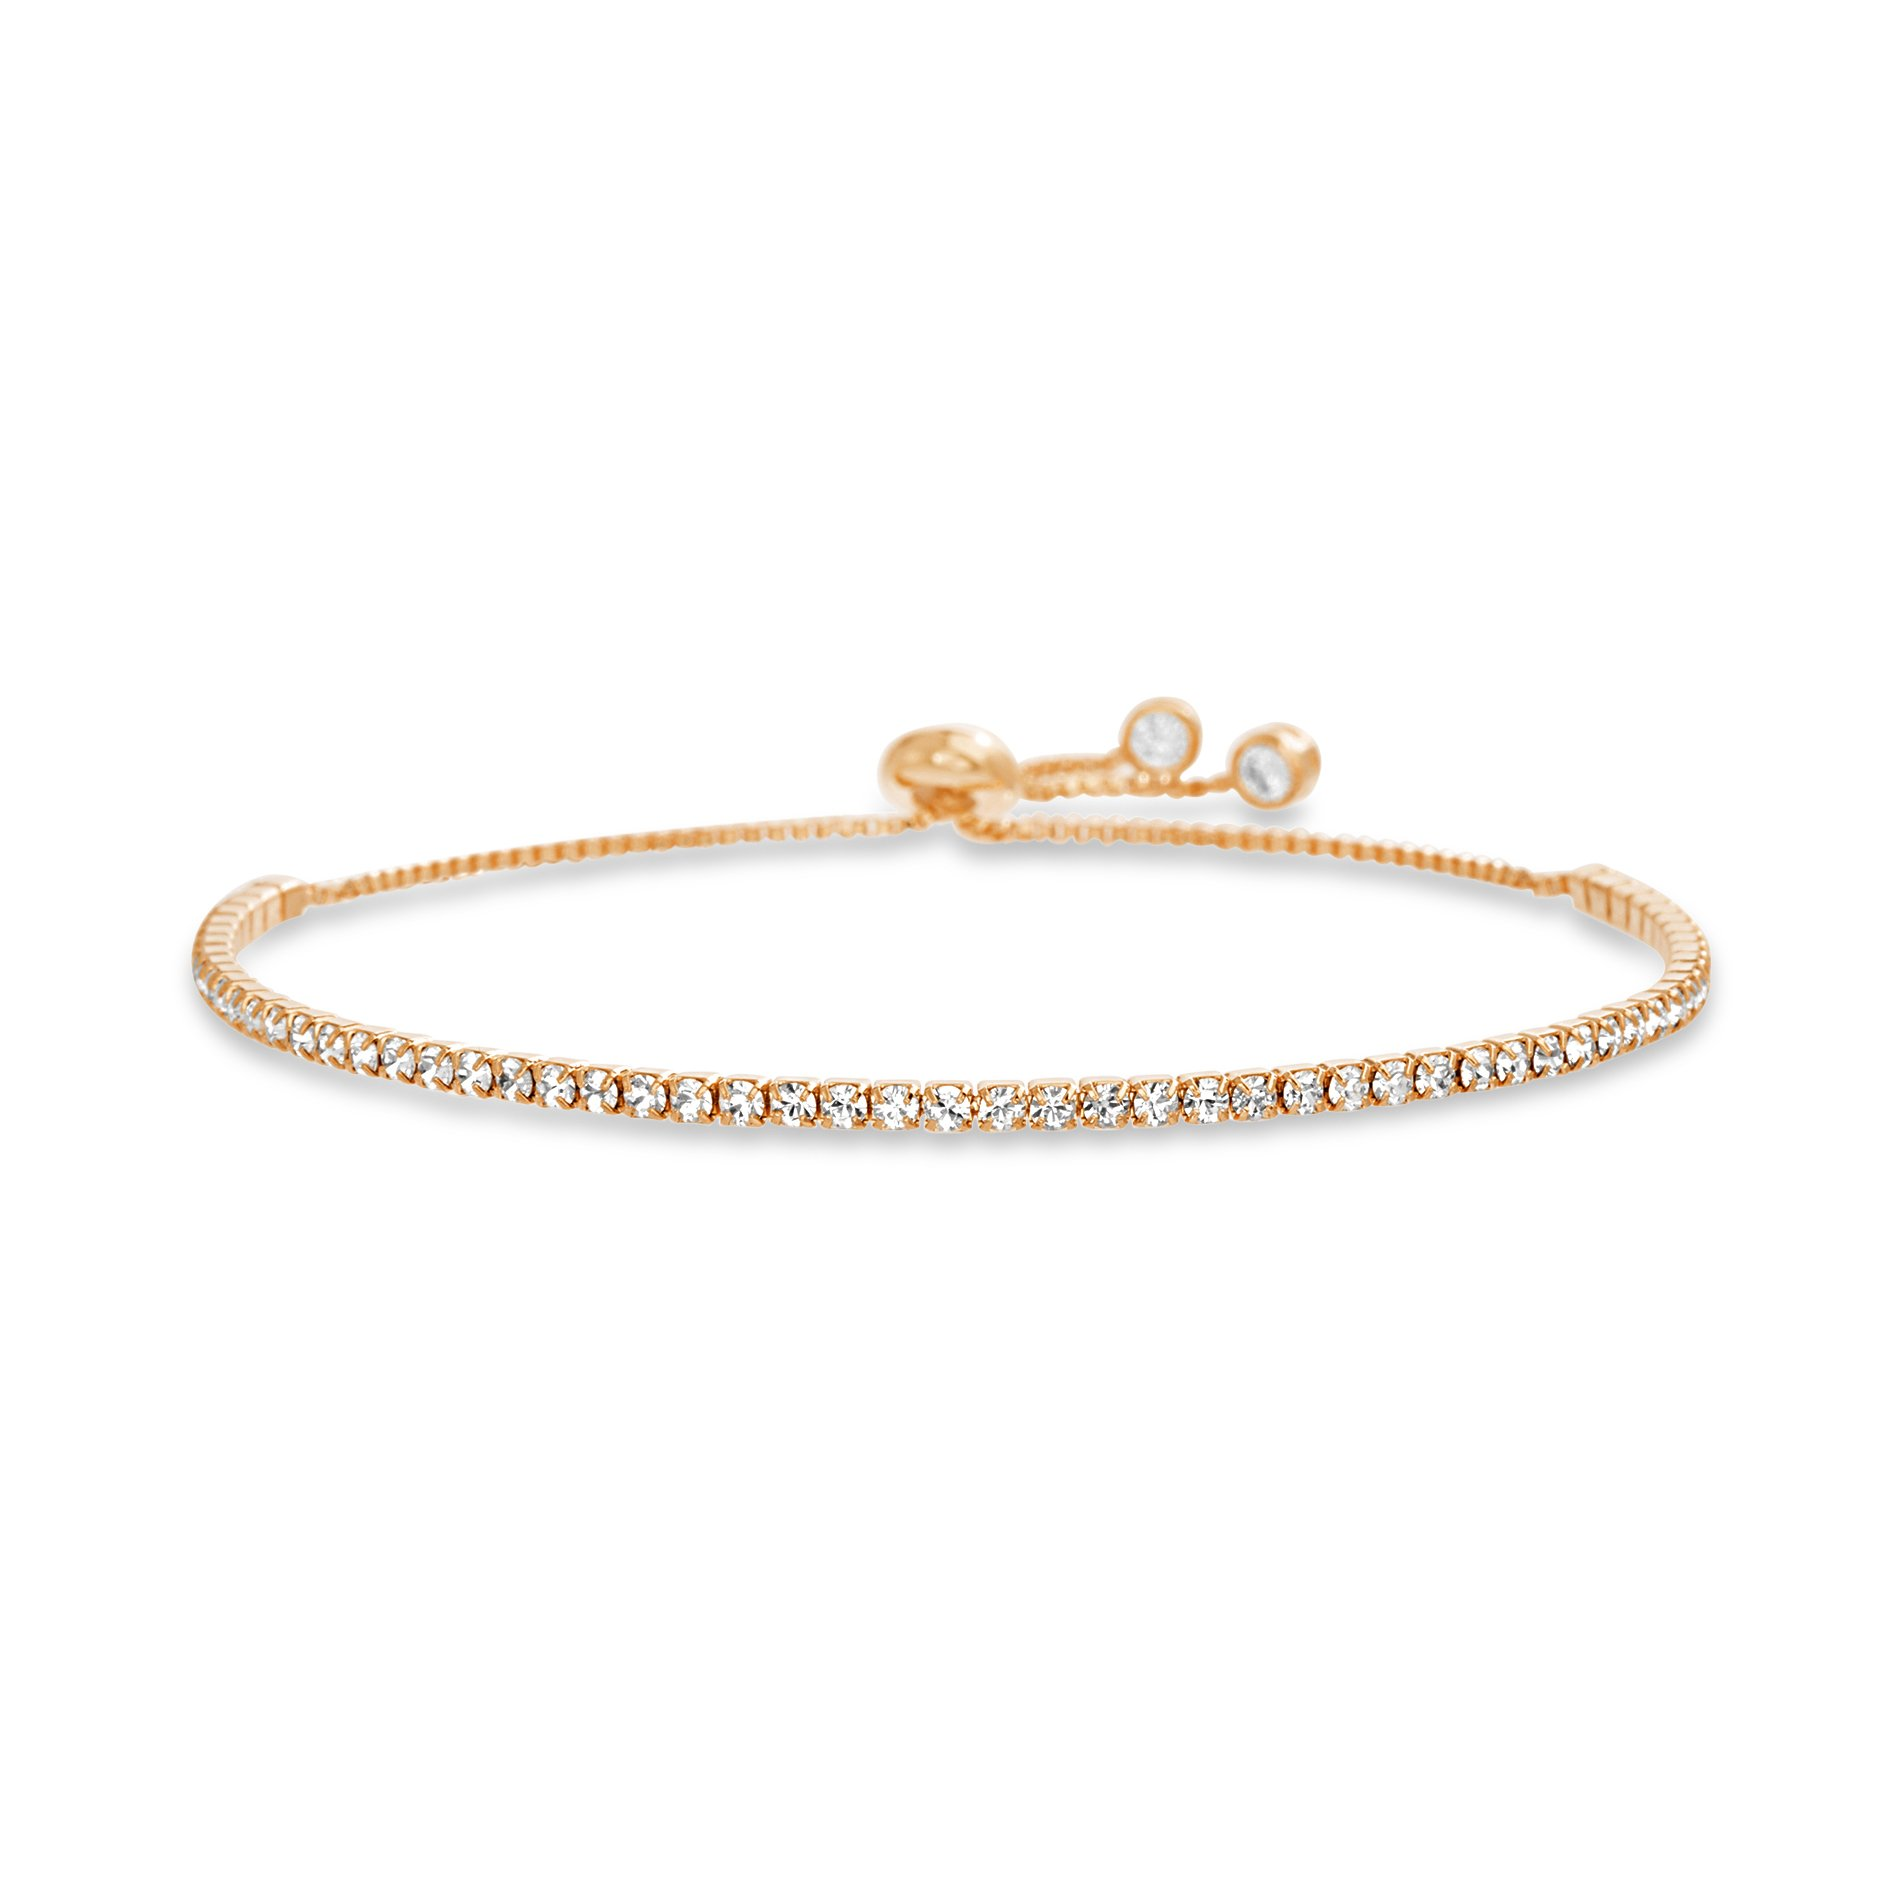 Devin Rose Womens Adjustable Bolo Style Tennis Bracelet Made with 2mm Swarovski Crystals in Rose Gold Plated Brass (Pink)